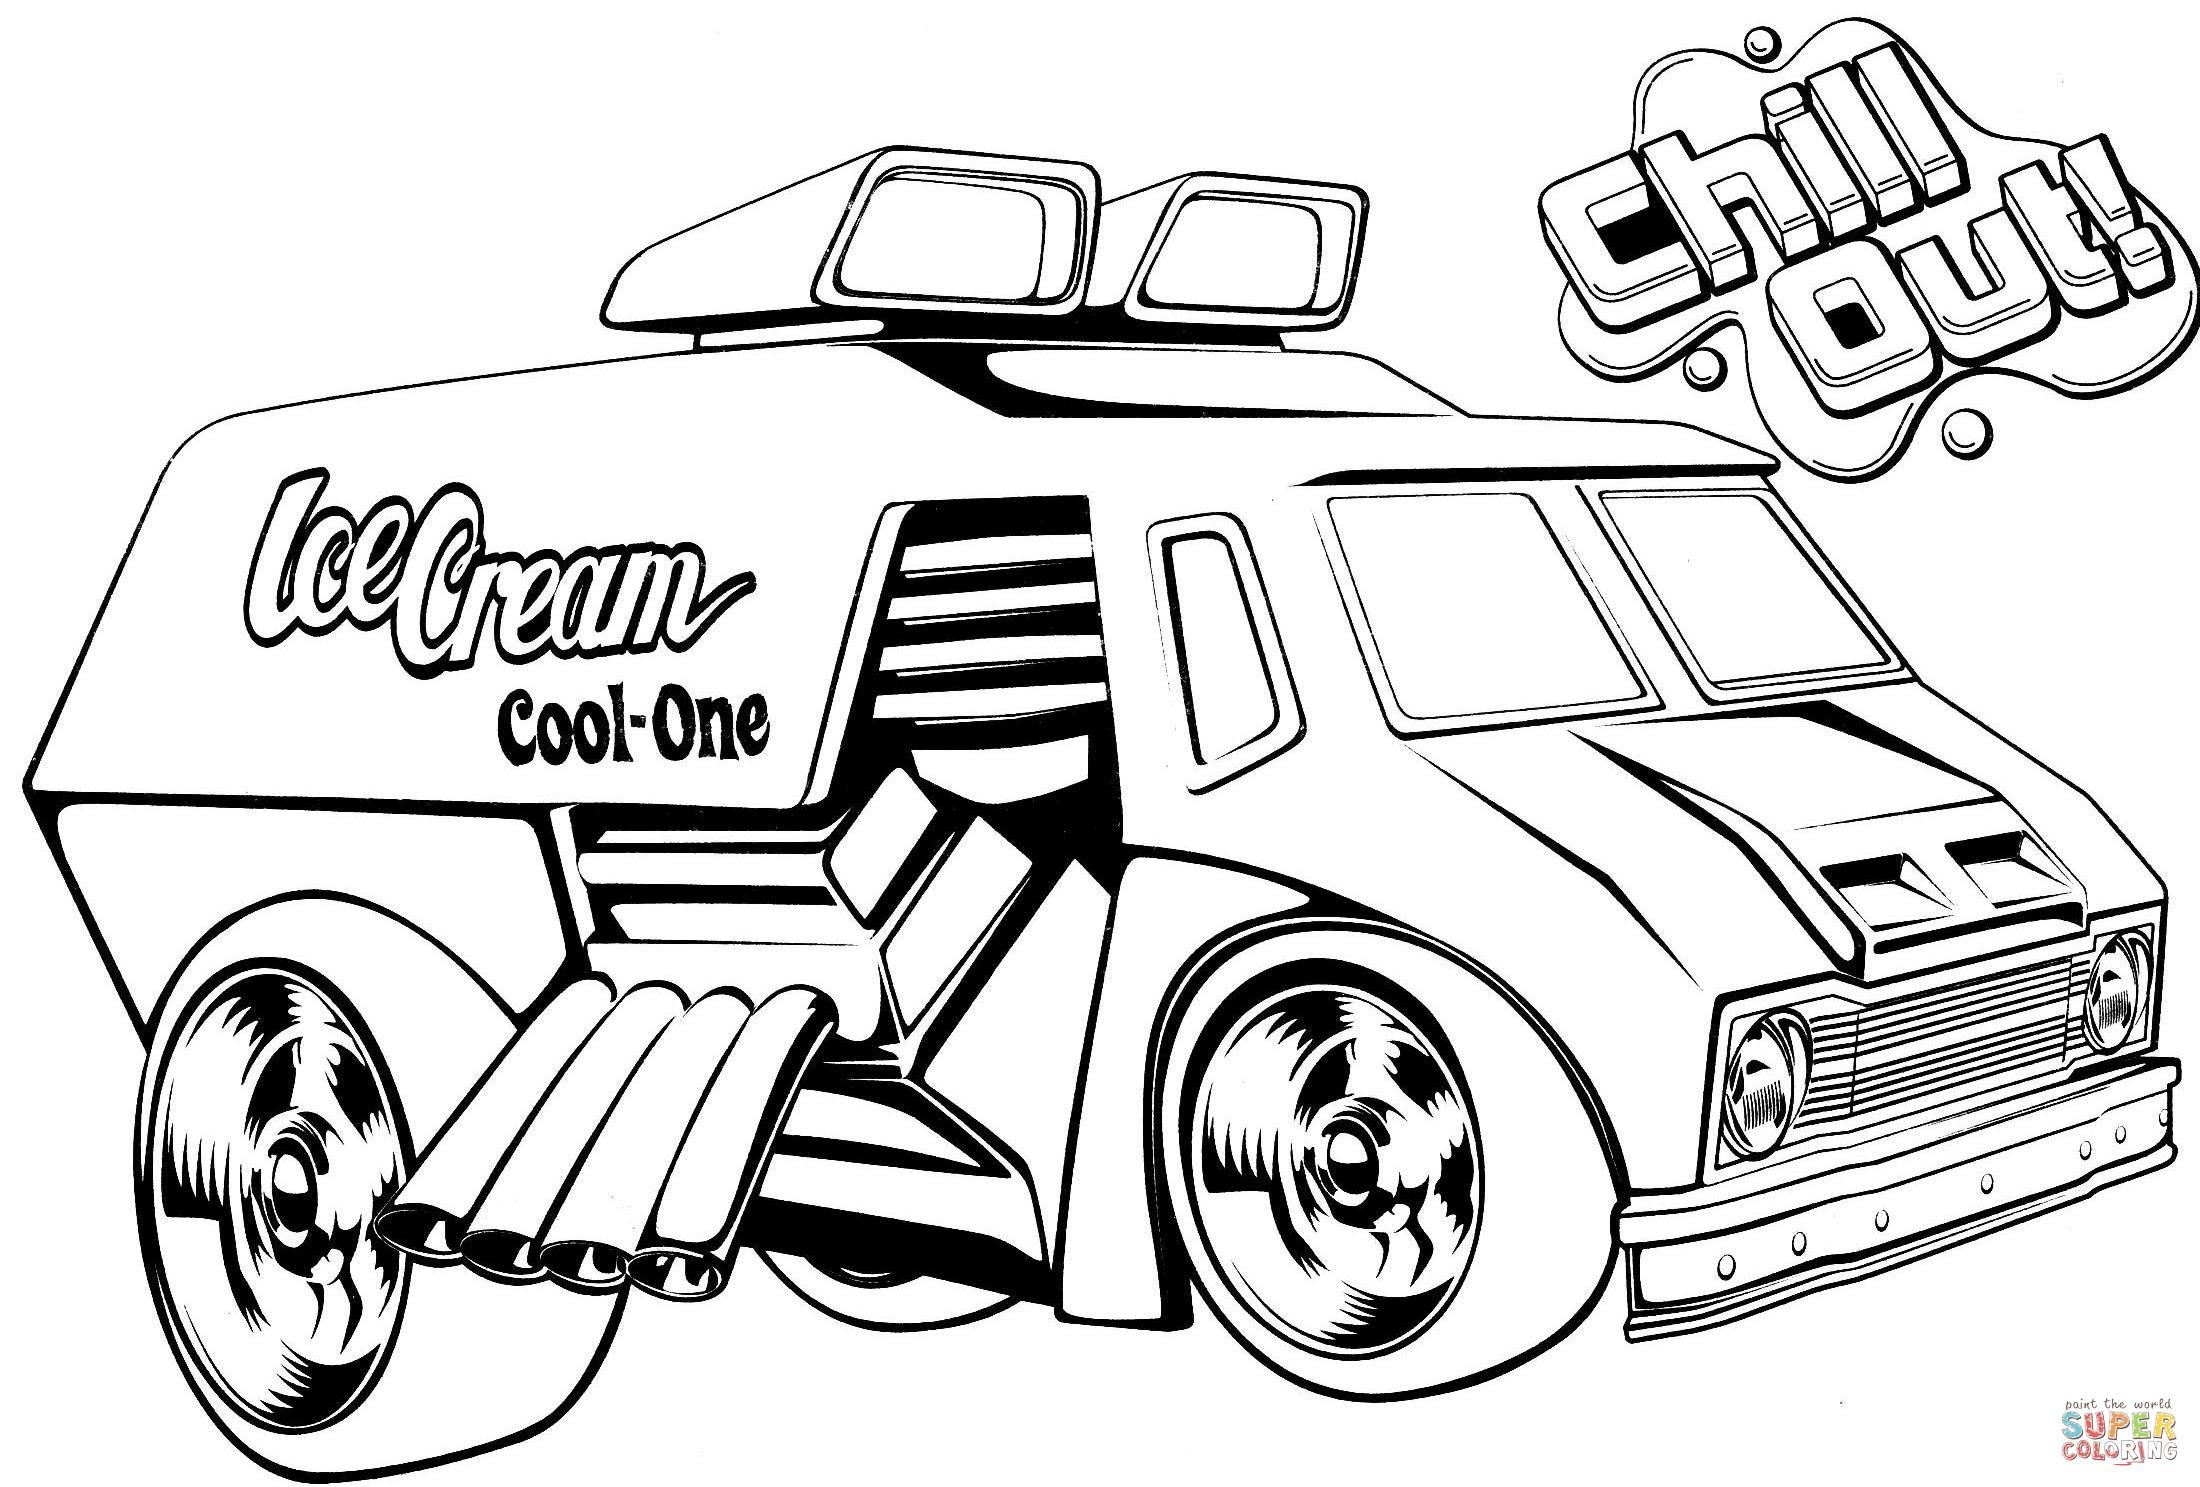 Fine Coloring Page Ice Cream Truck That You Must Know You Re In